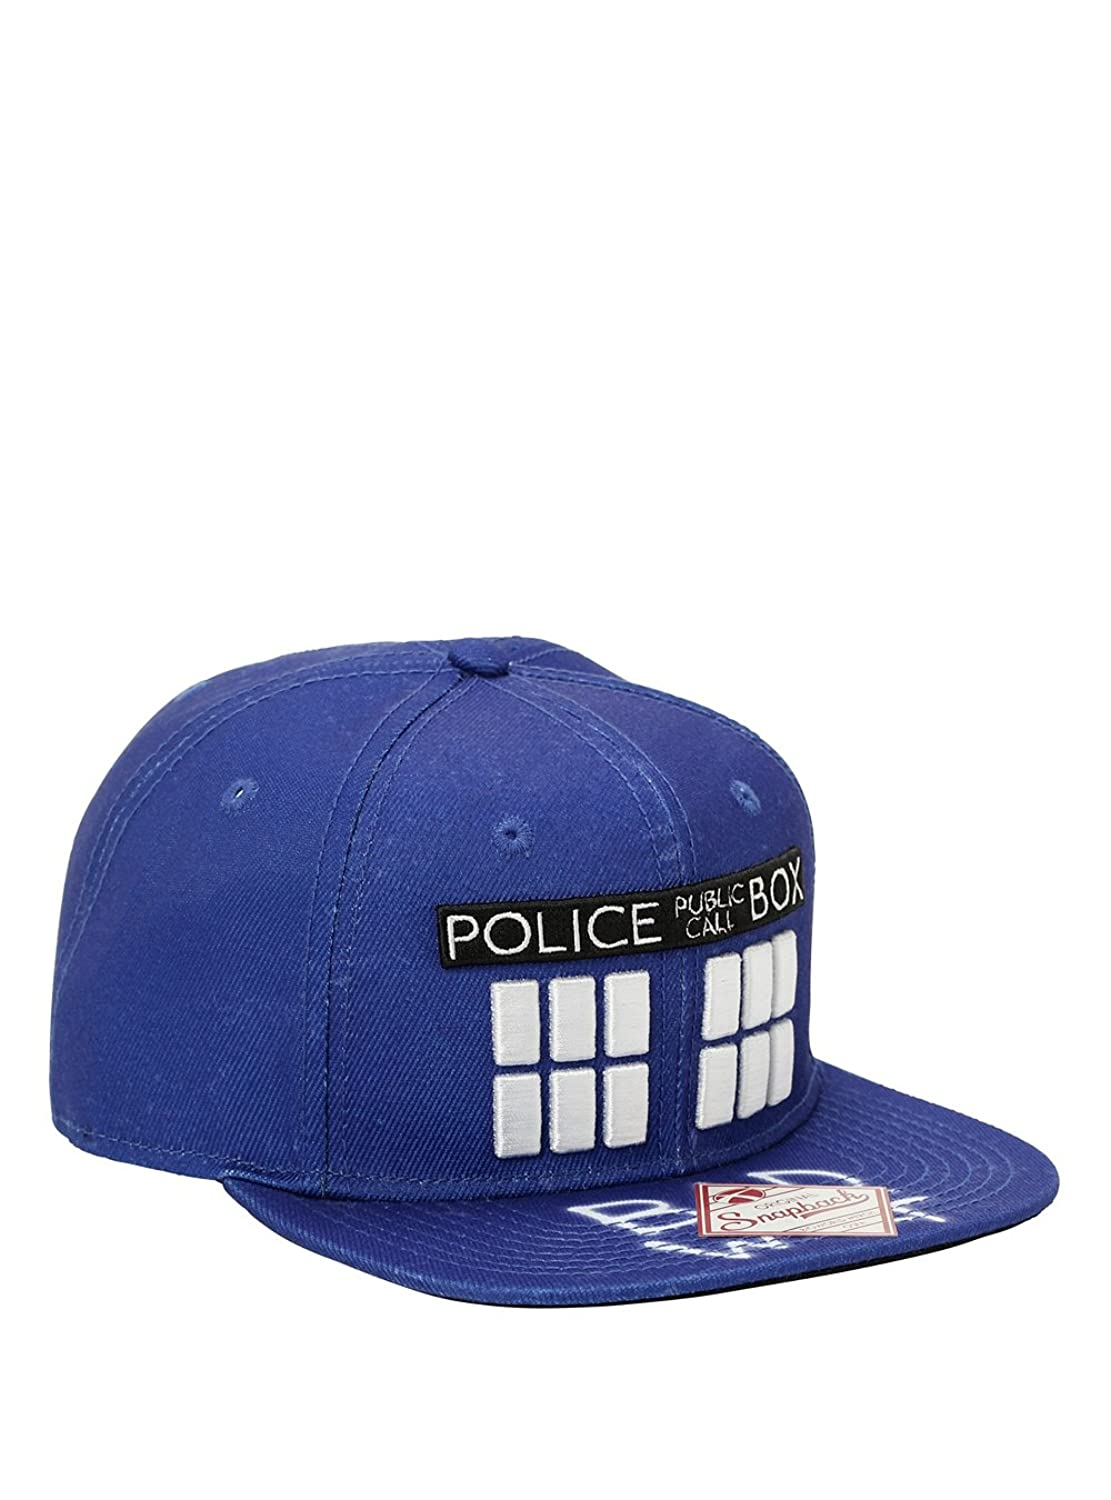 Doctor Who Bad Wolf TARDIS Snapback Hat doctor who corpse marker monster collection ed